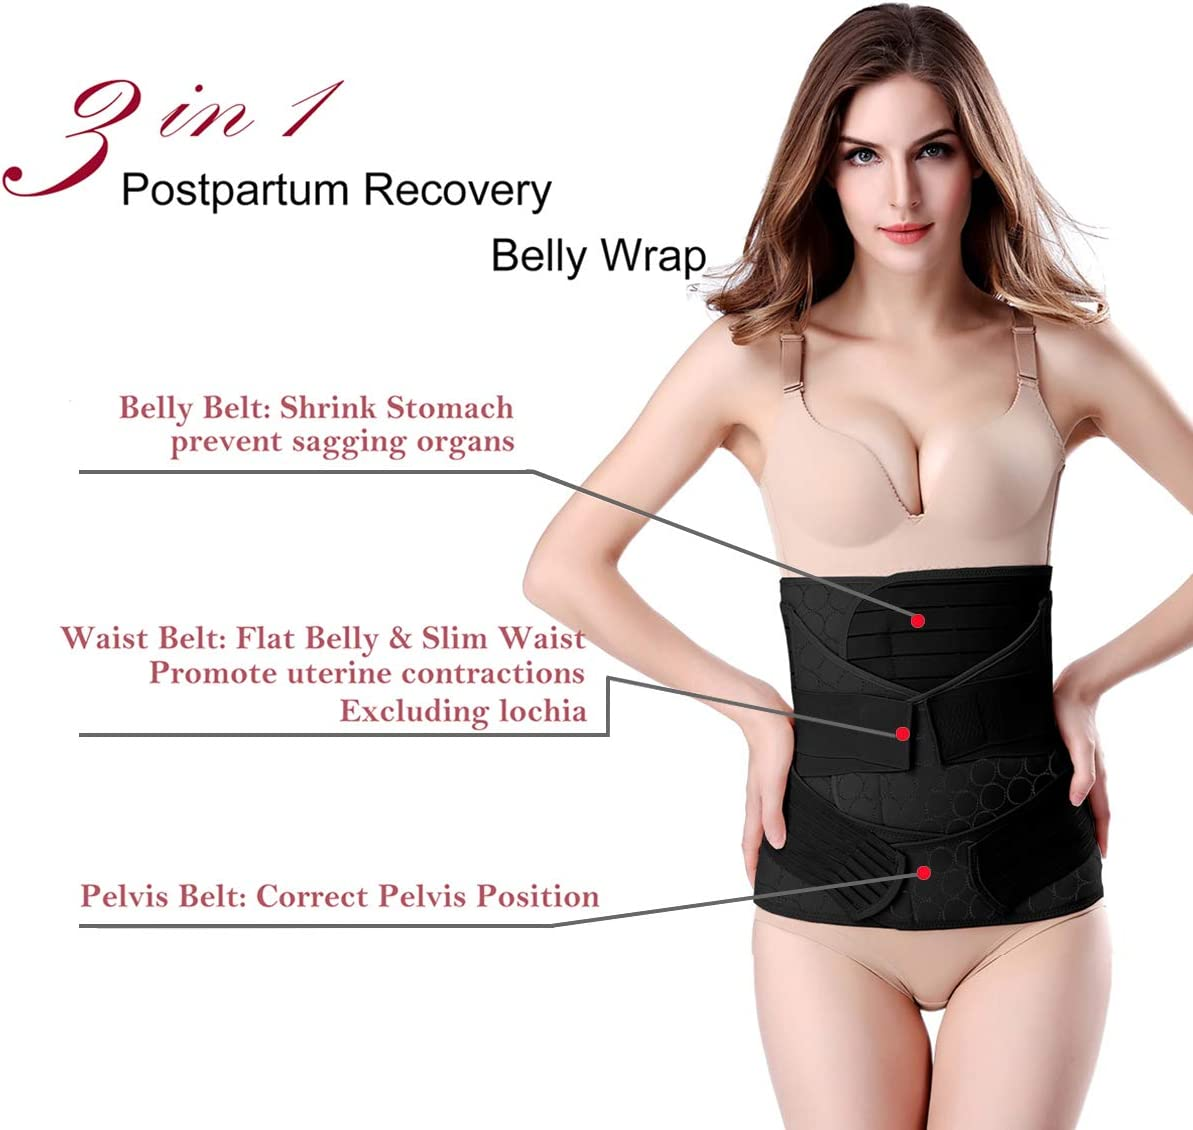 Black Plus Size 3 in 1 Postpartum Belly Wrap Recovery Belly//Waist//Pelvis Belt Black Postpartum Belly Band